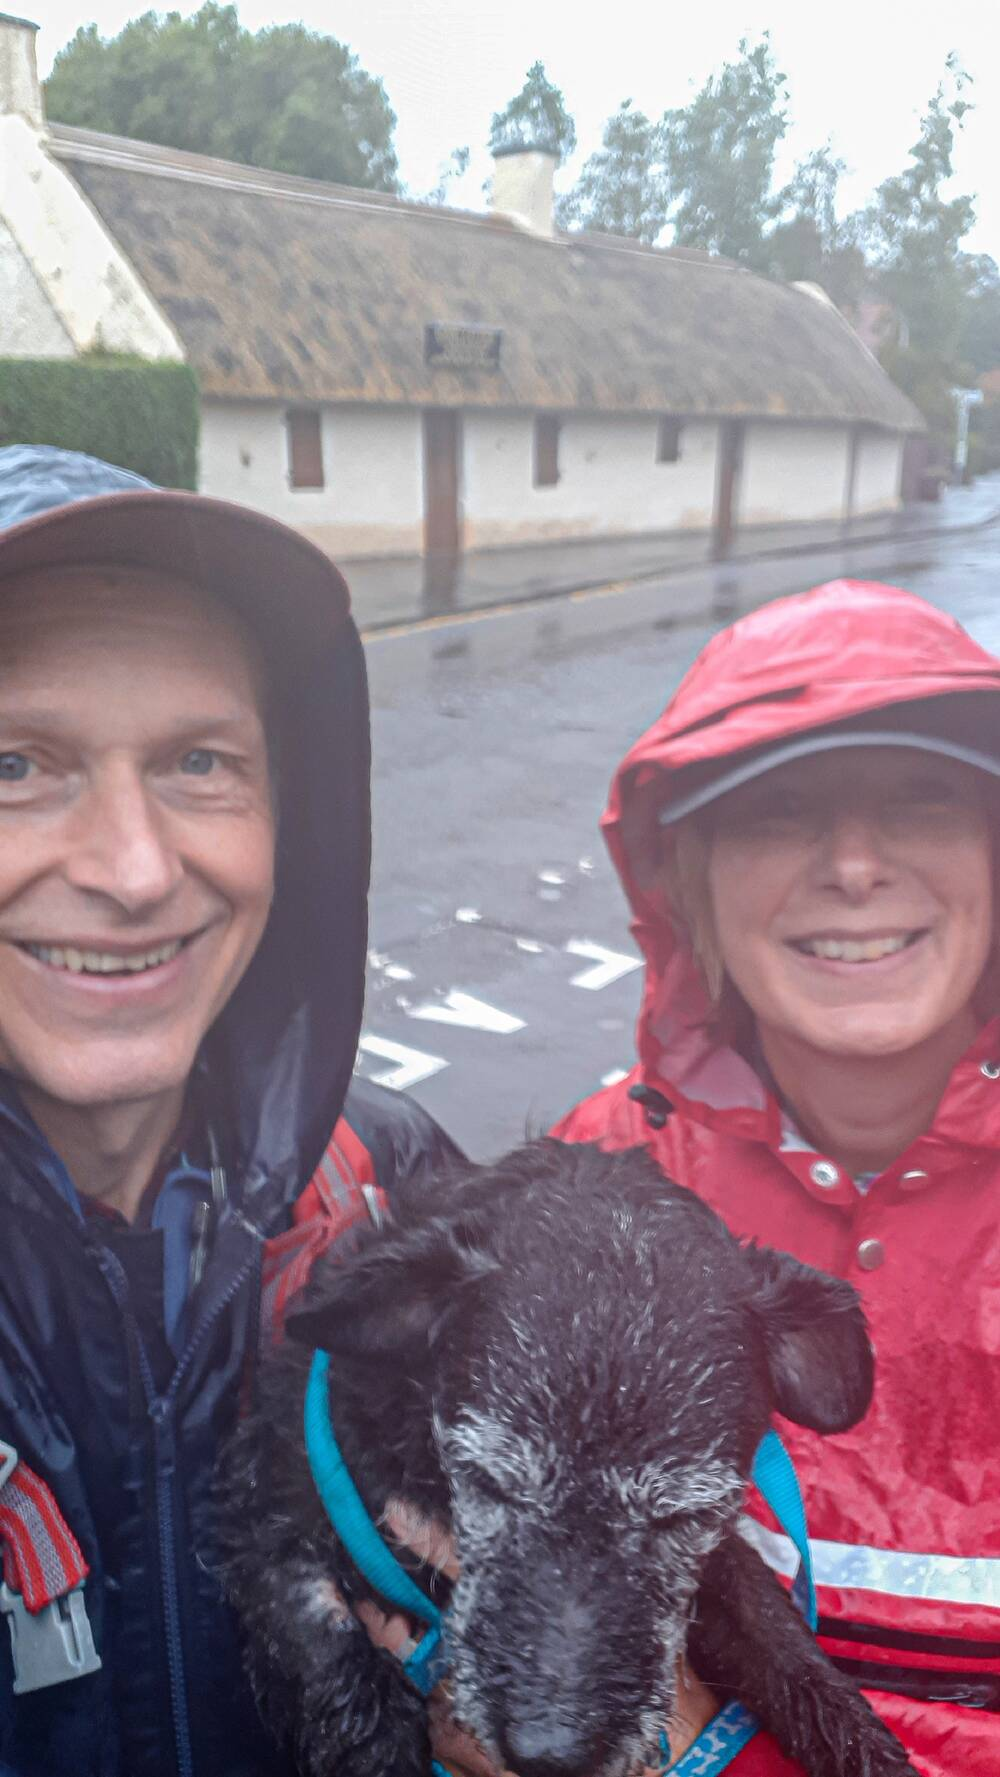 A close-up selfie of a man and a woman in cagoules, standing in front of a thatched cottage in the rain. They hold a very soggy dog between them.